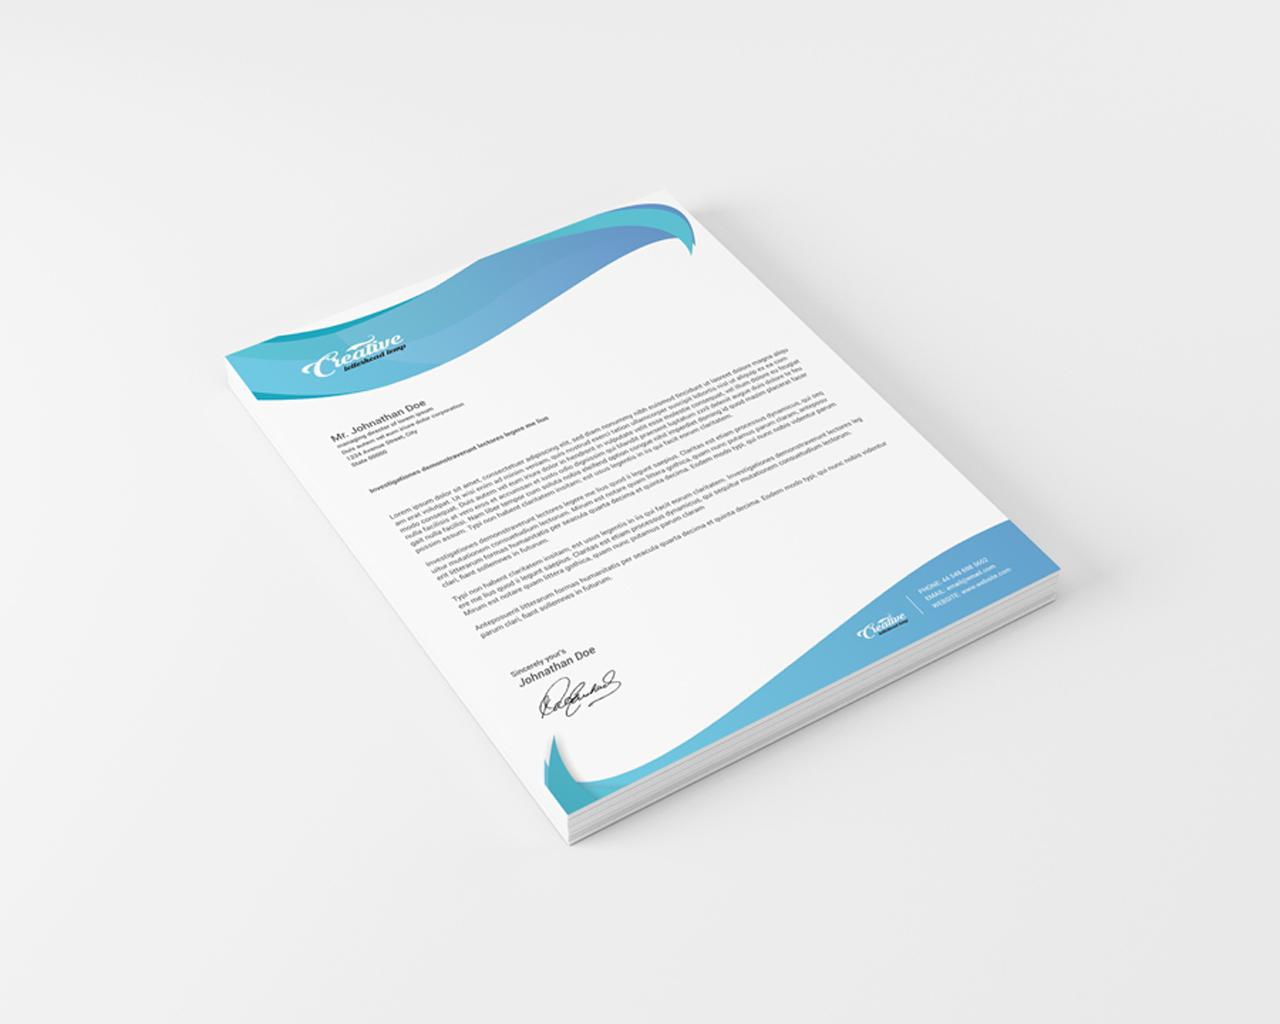 Professional letterhead design service by creativeshop7 on envato studio professional letterhead design service altavistaventures Image collections